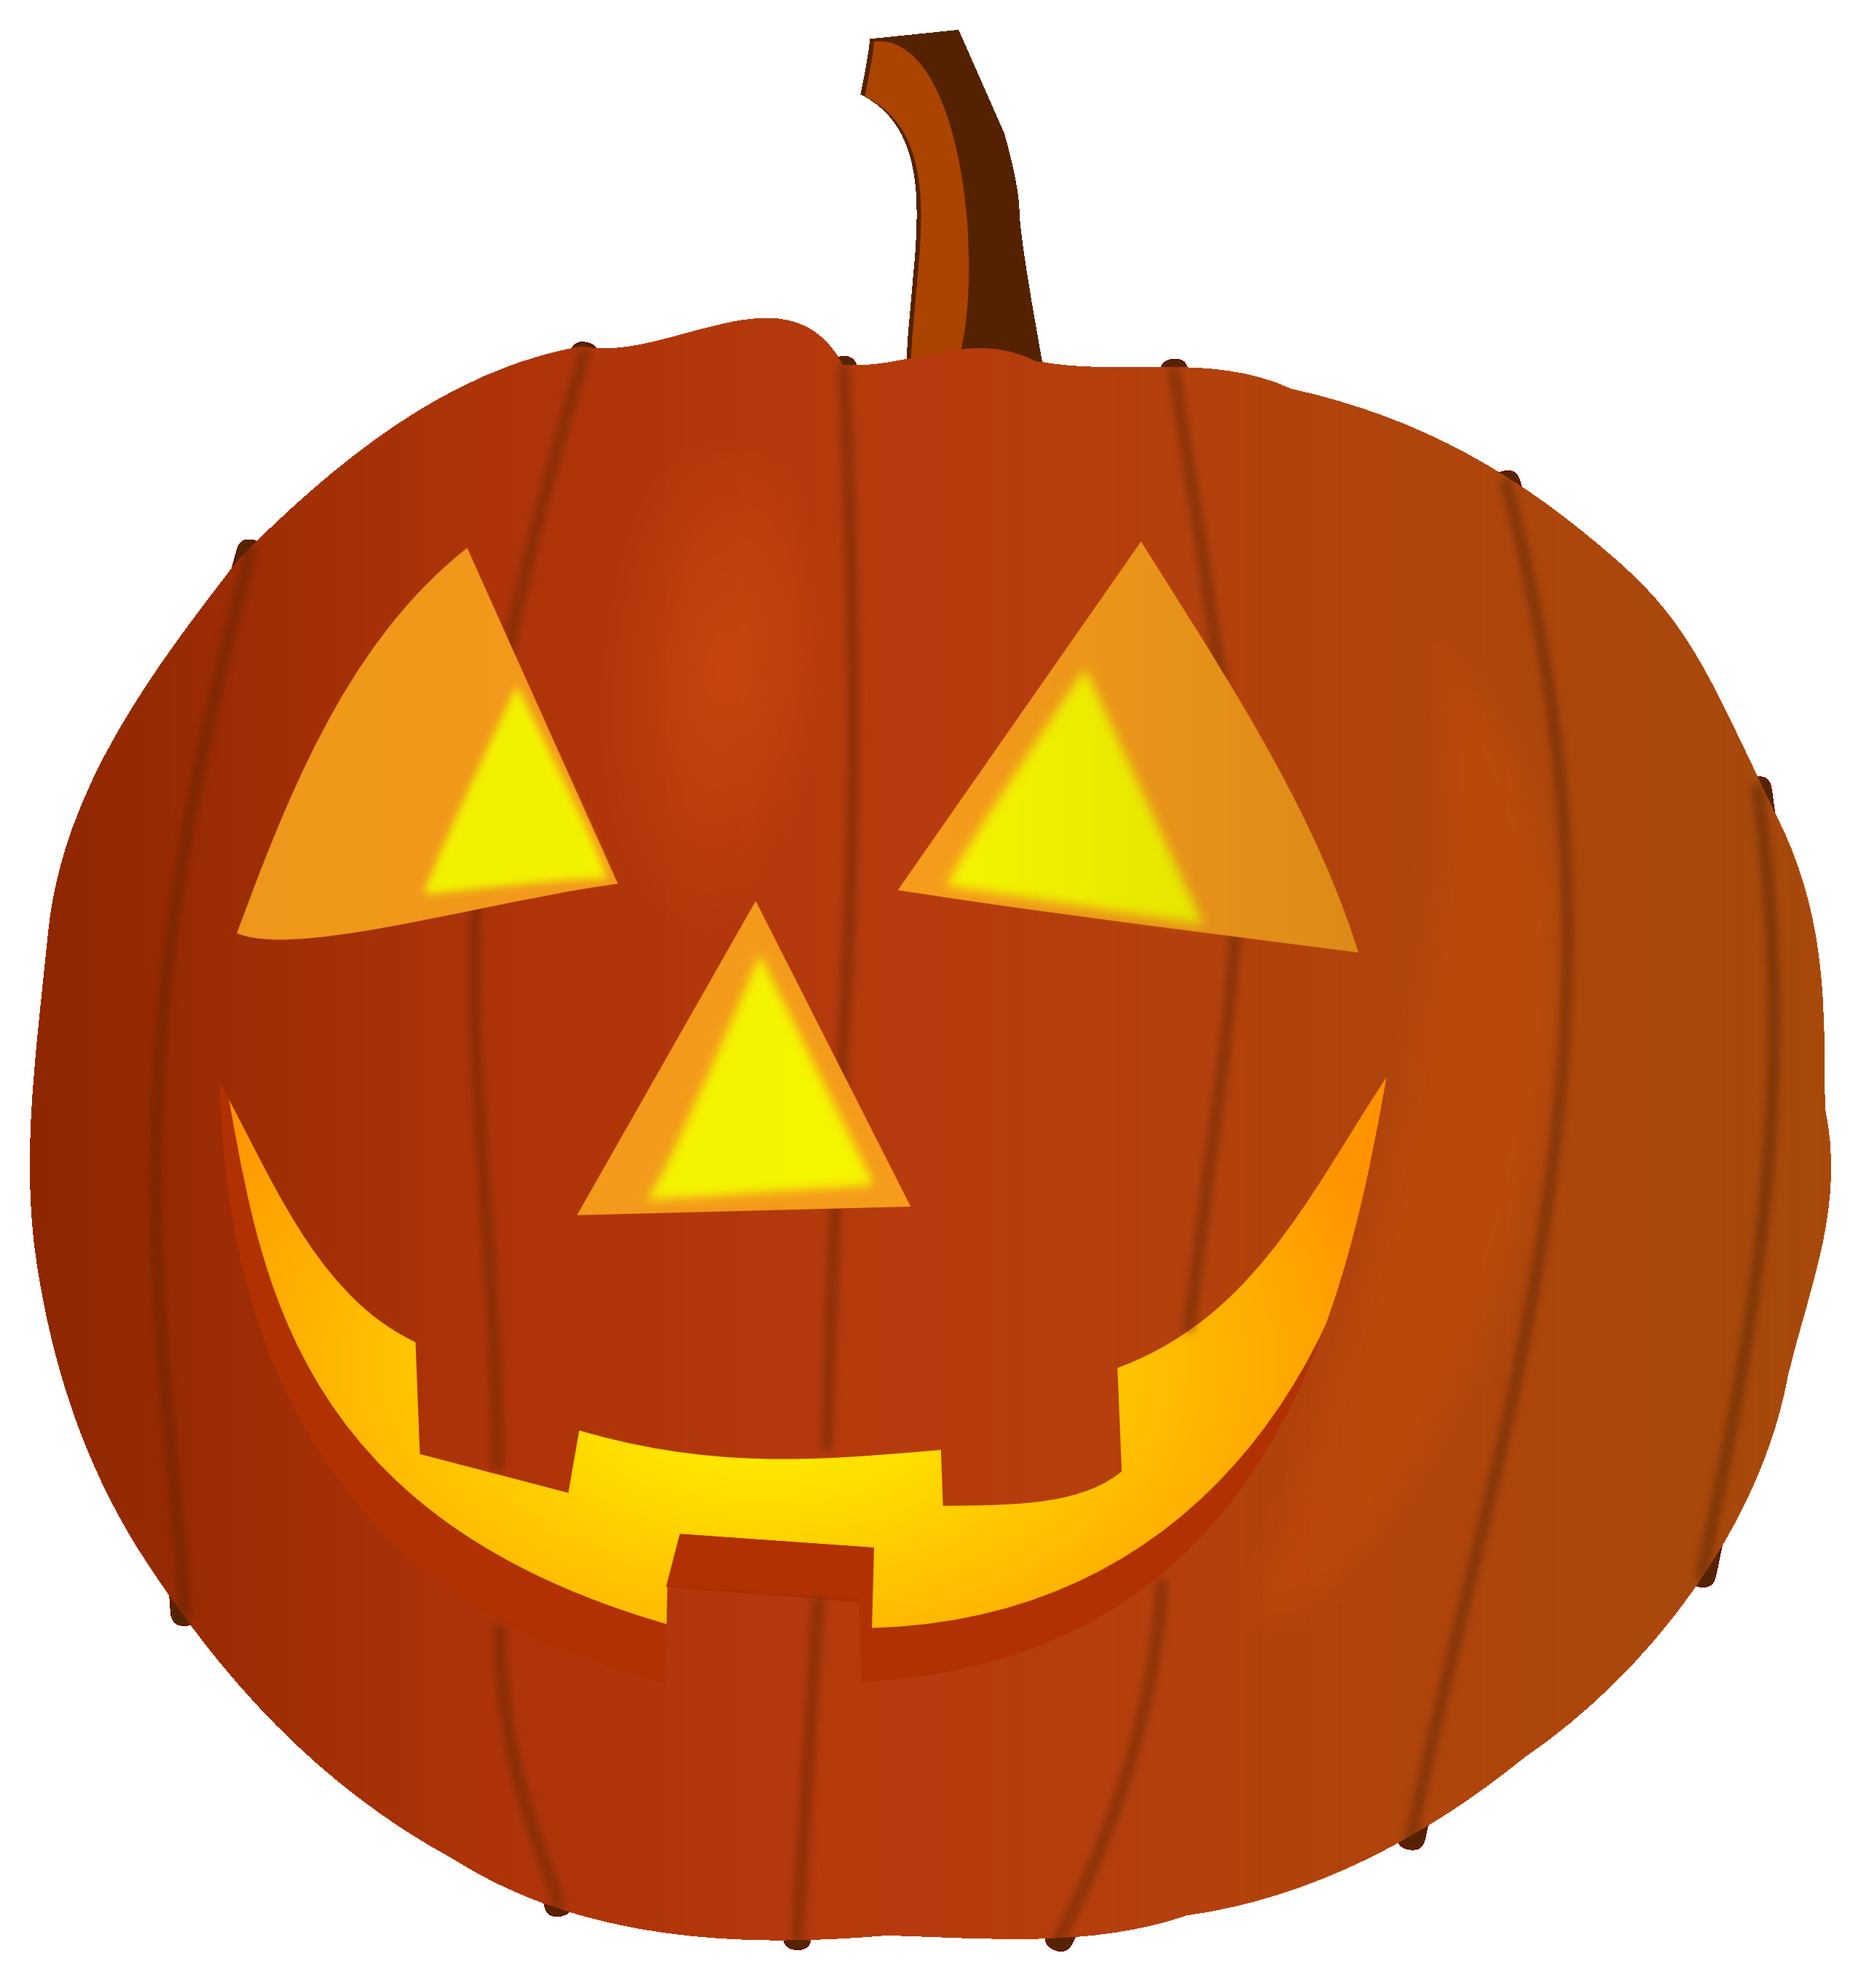 2555x2730 Cute Pumpkin Clipart Fun For Christmas Lively Picture Clip Art